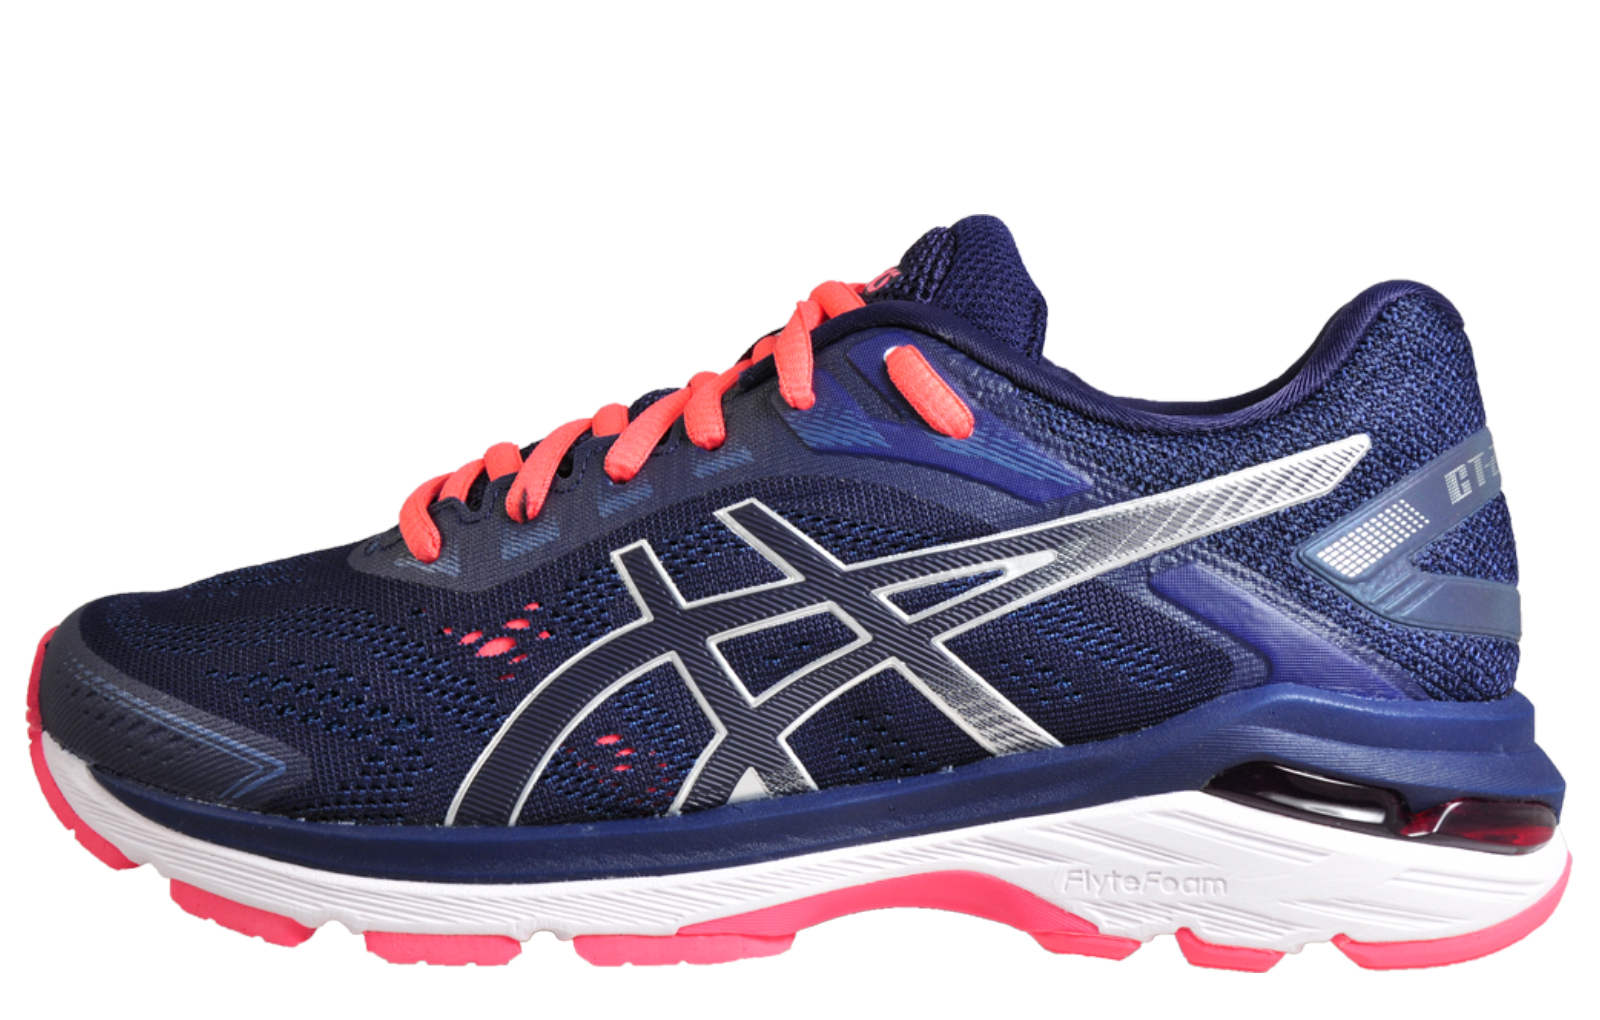 Asics GT 2000 7 Womens New In 2019 - AS171090